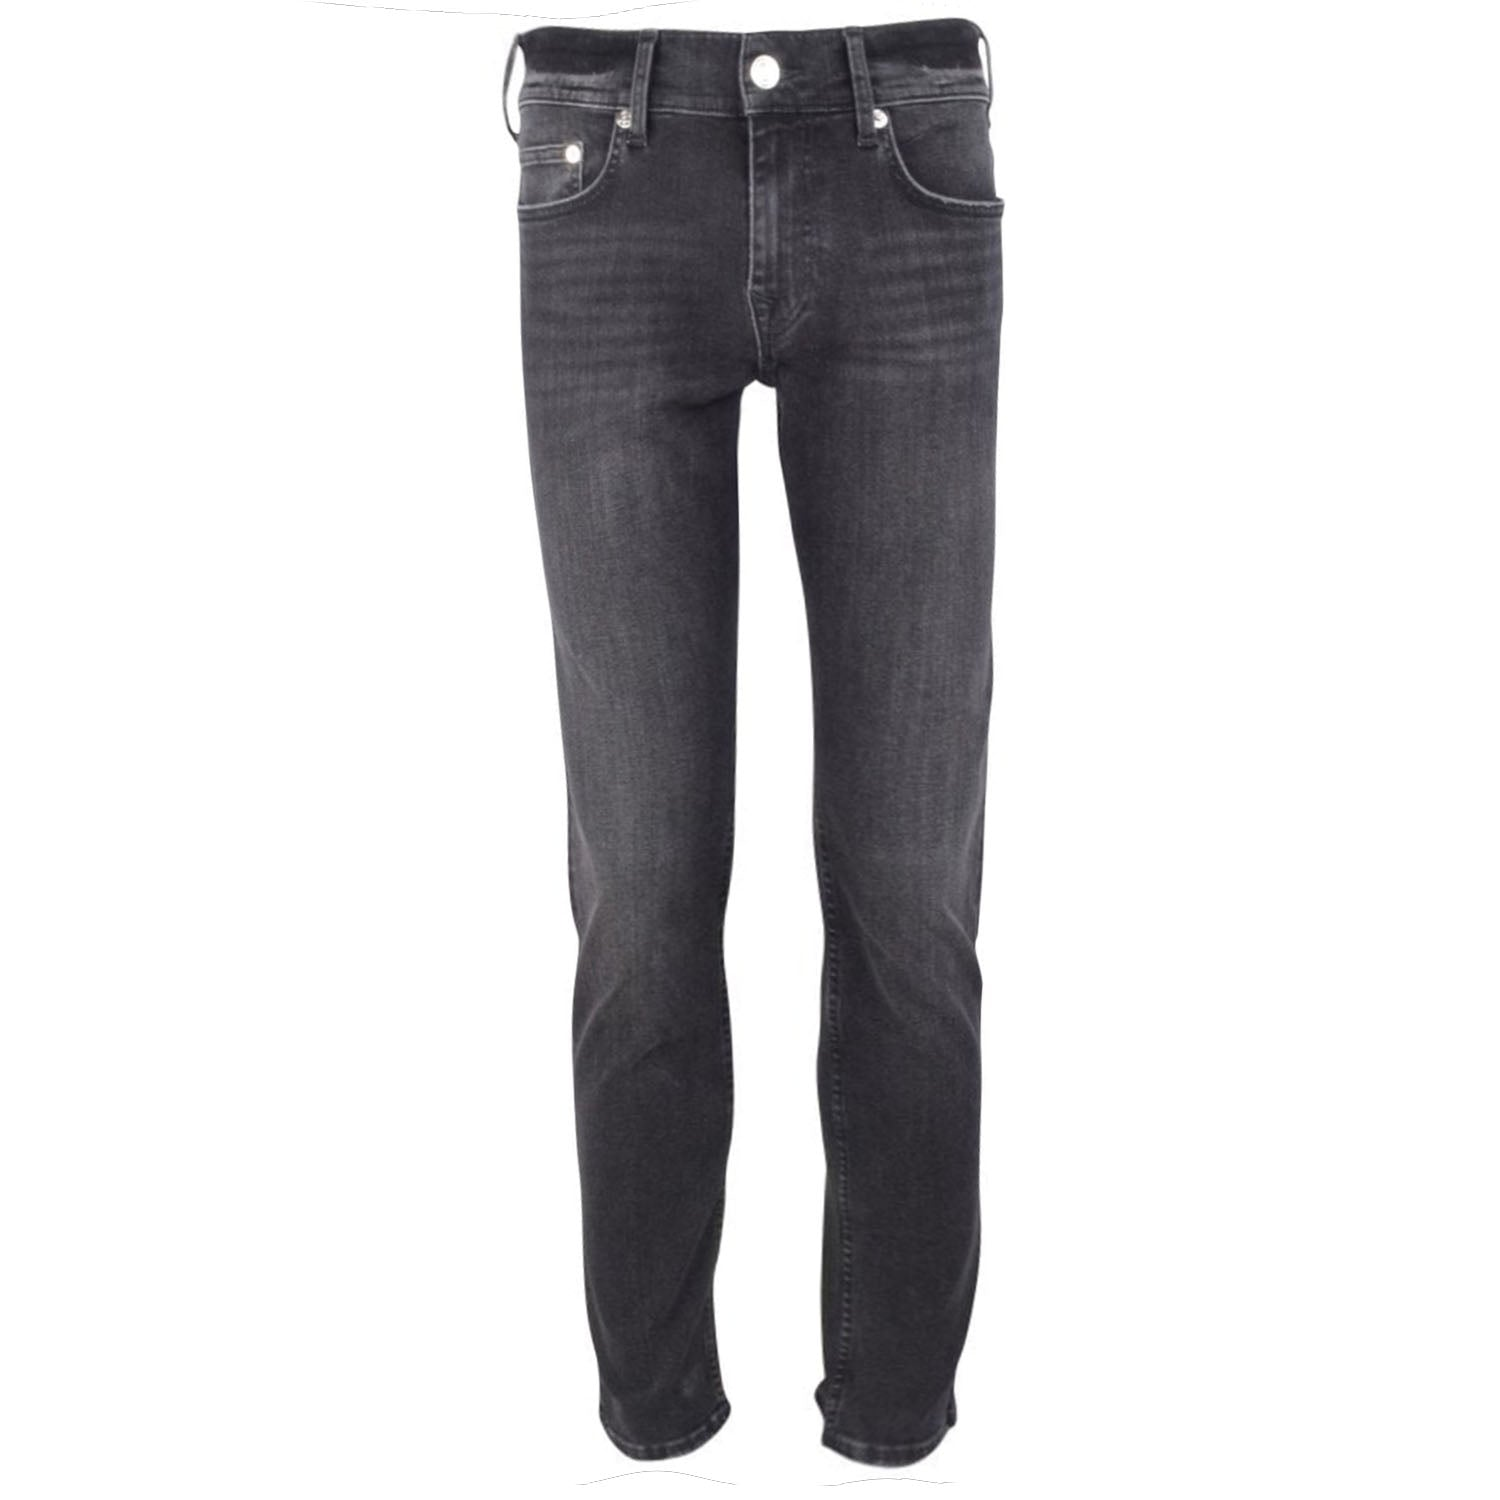 True Religion Dark Grey Rocco Jeans